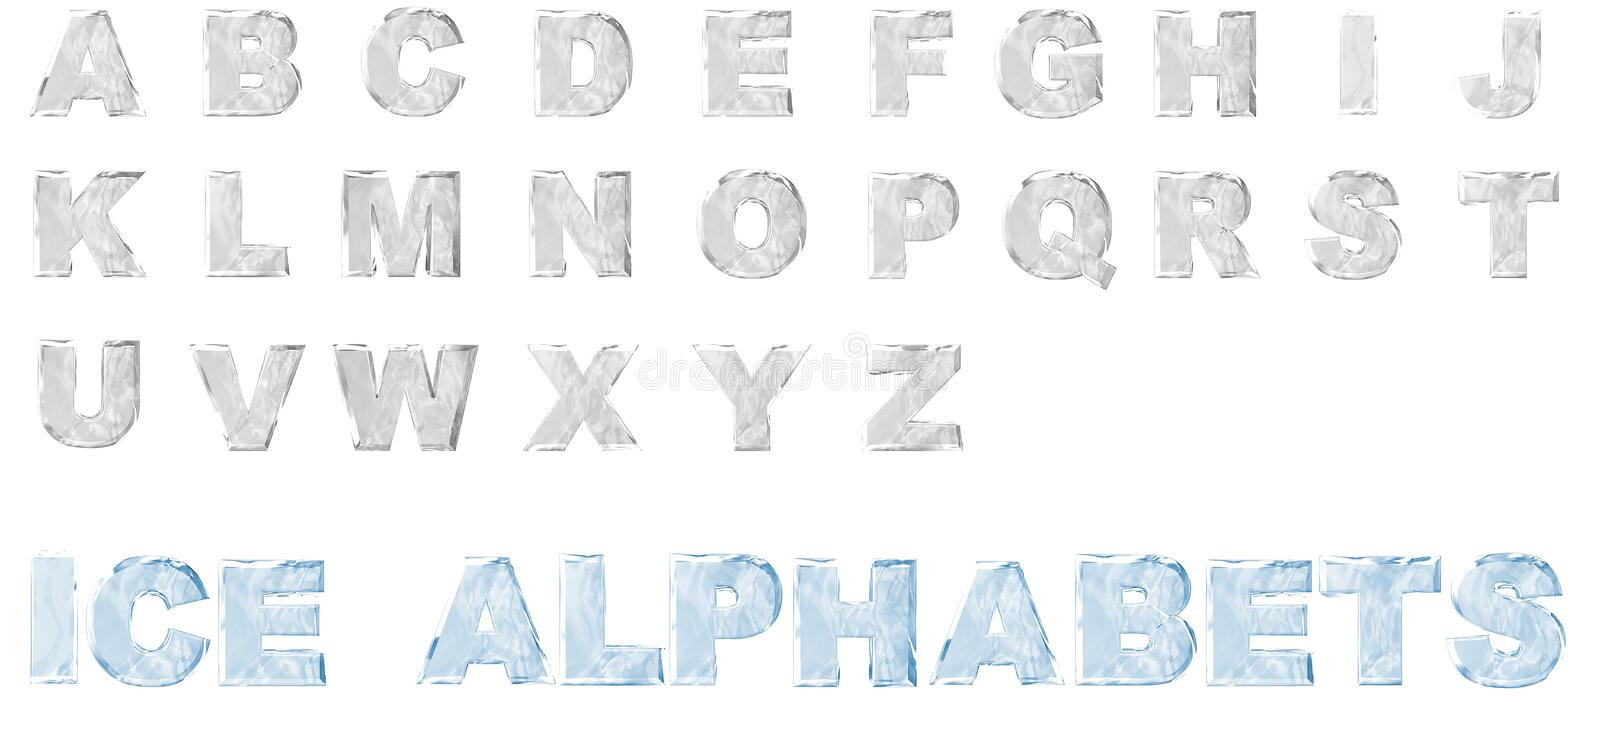 3D Ice Alphabets set. 3D Render of ice alphabets from A to Z, isolated on a white background stock illustration